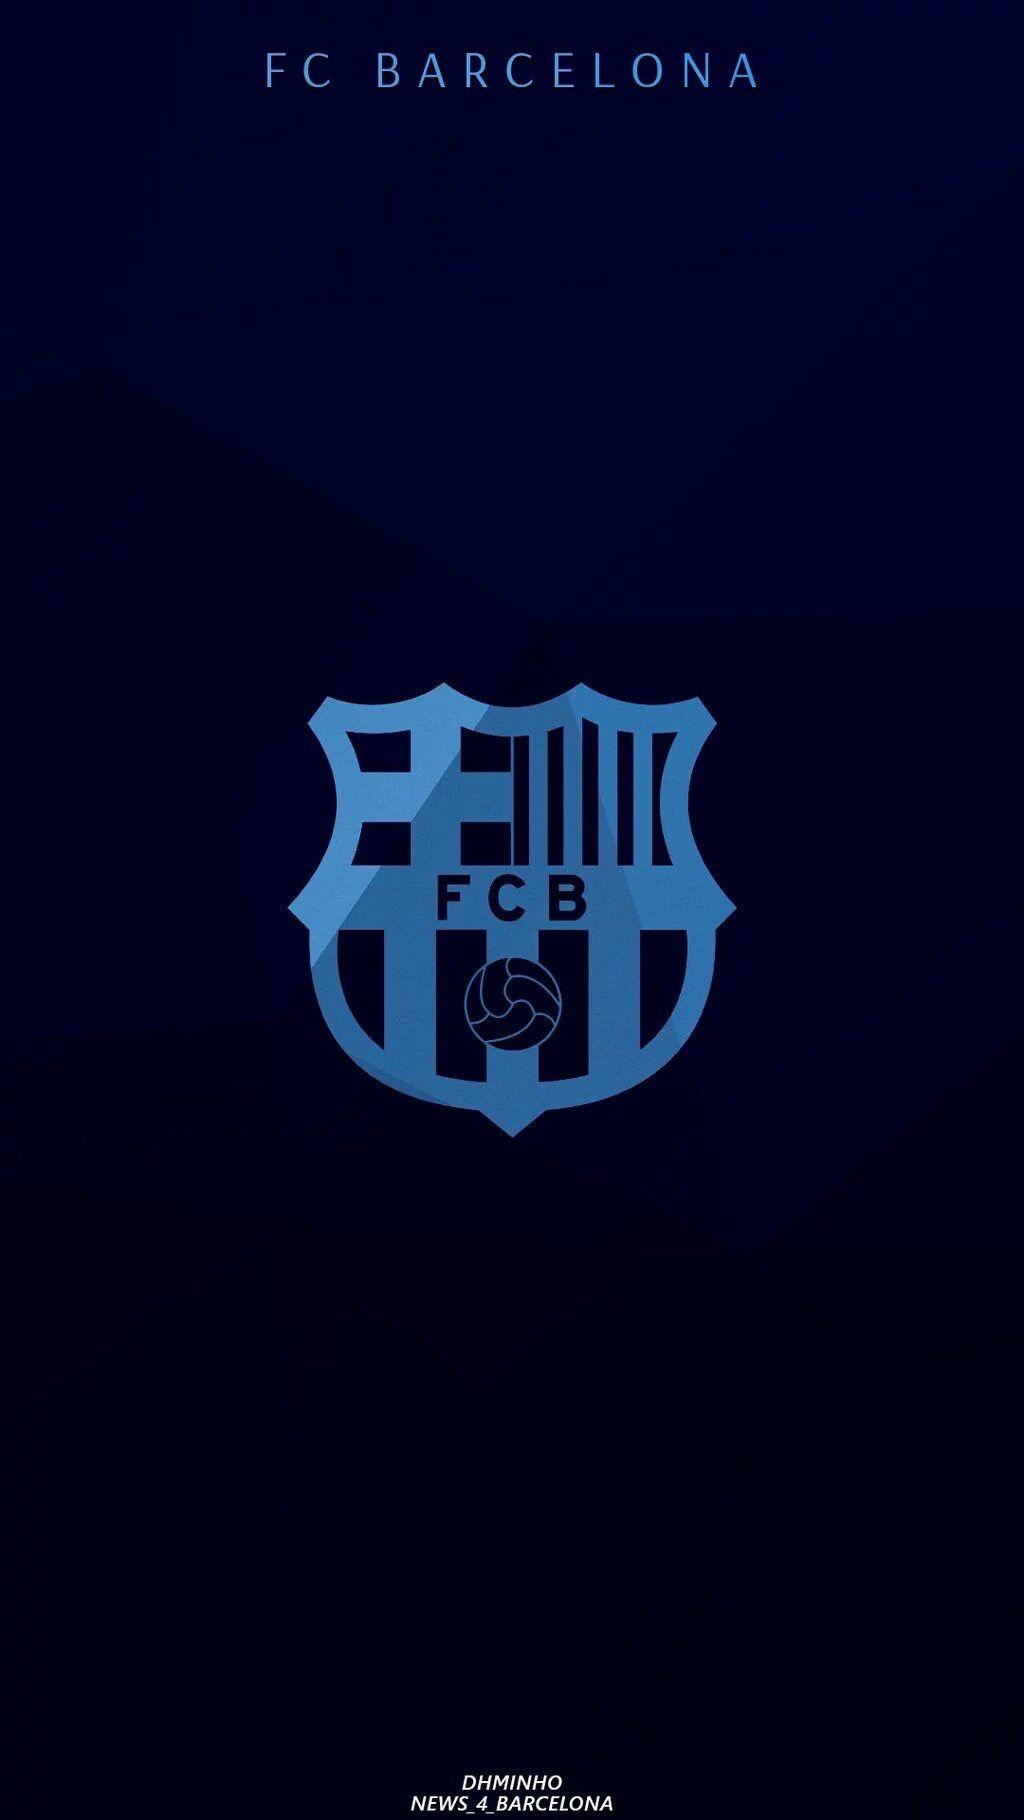 10+ Fc Barcelona Wallpaper Iphone Xr